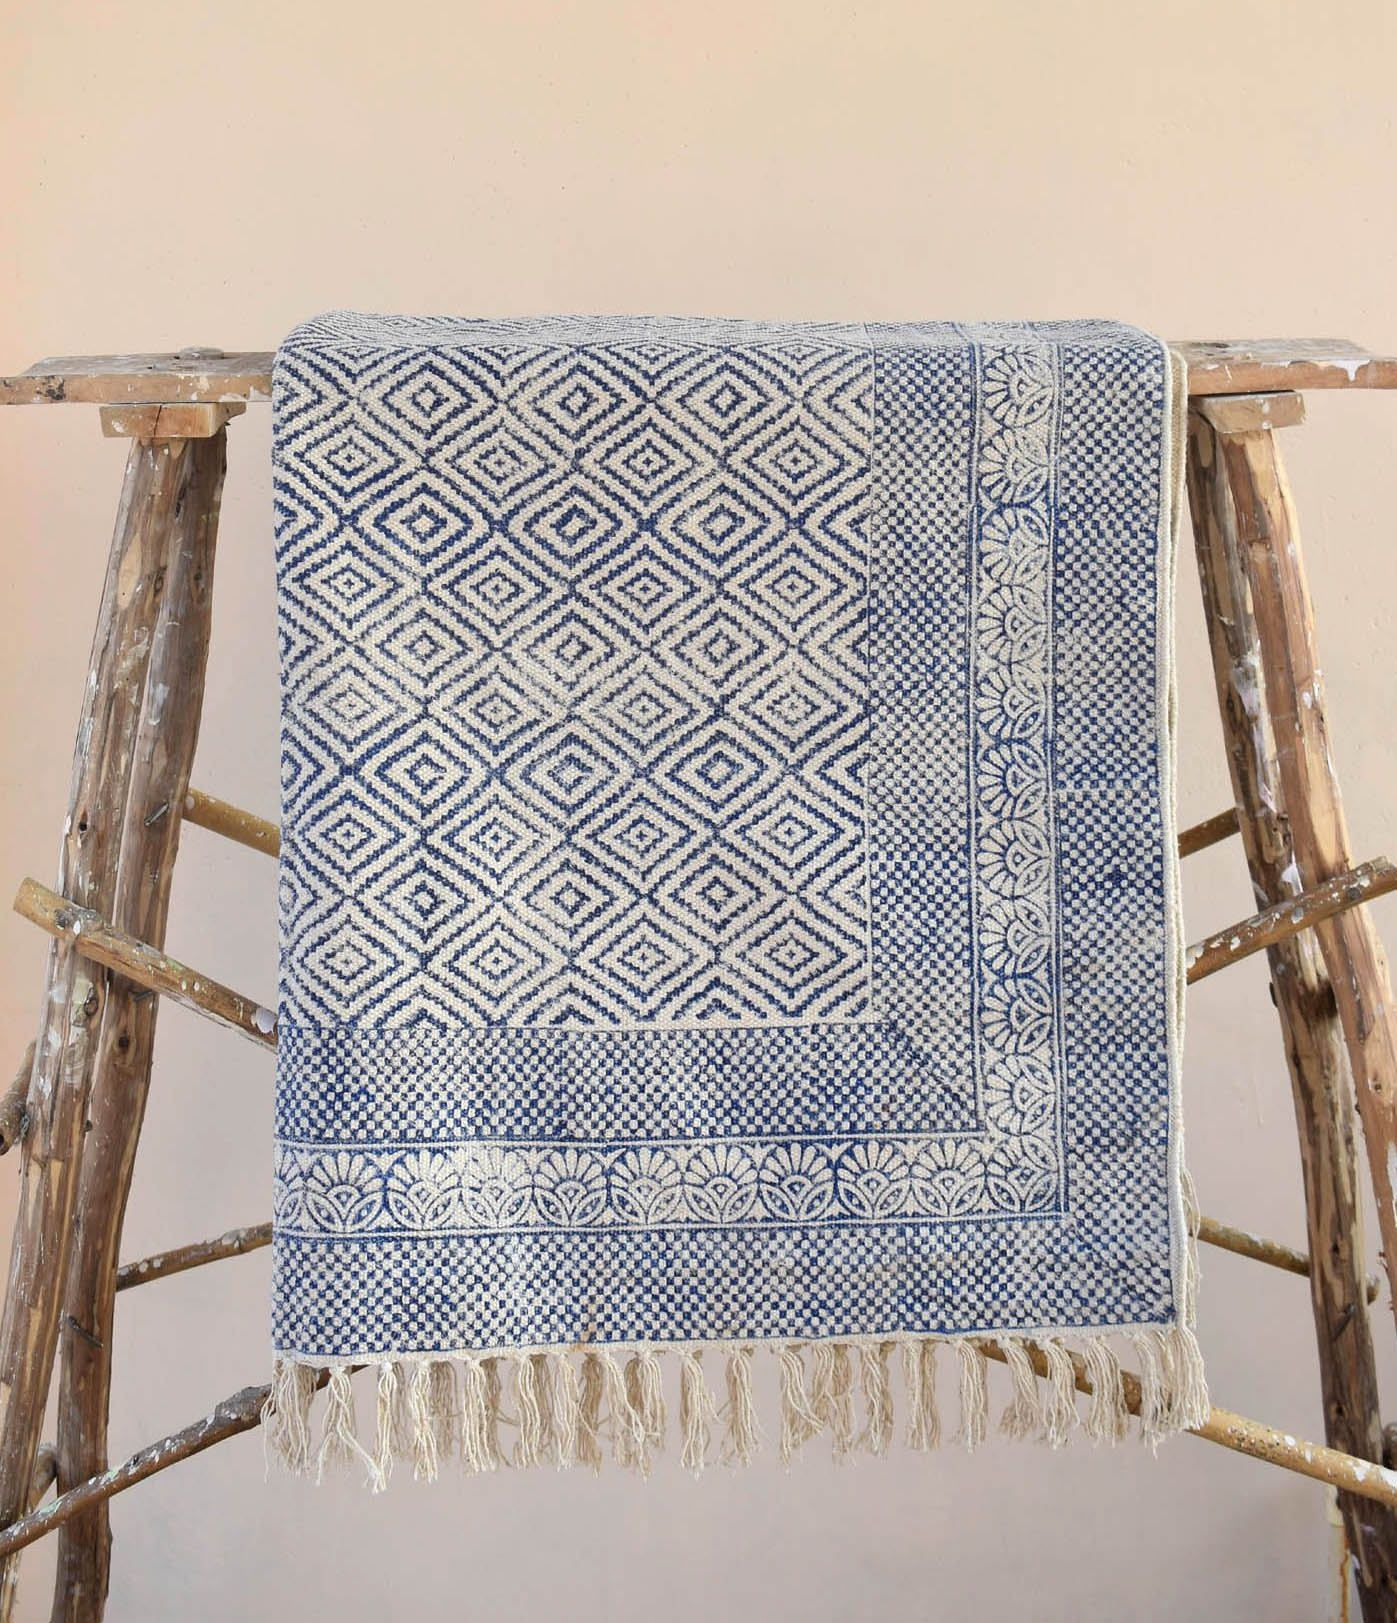 Large Indian rug cotton rug, woven rug, area rugs for sale